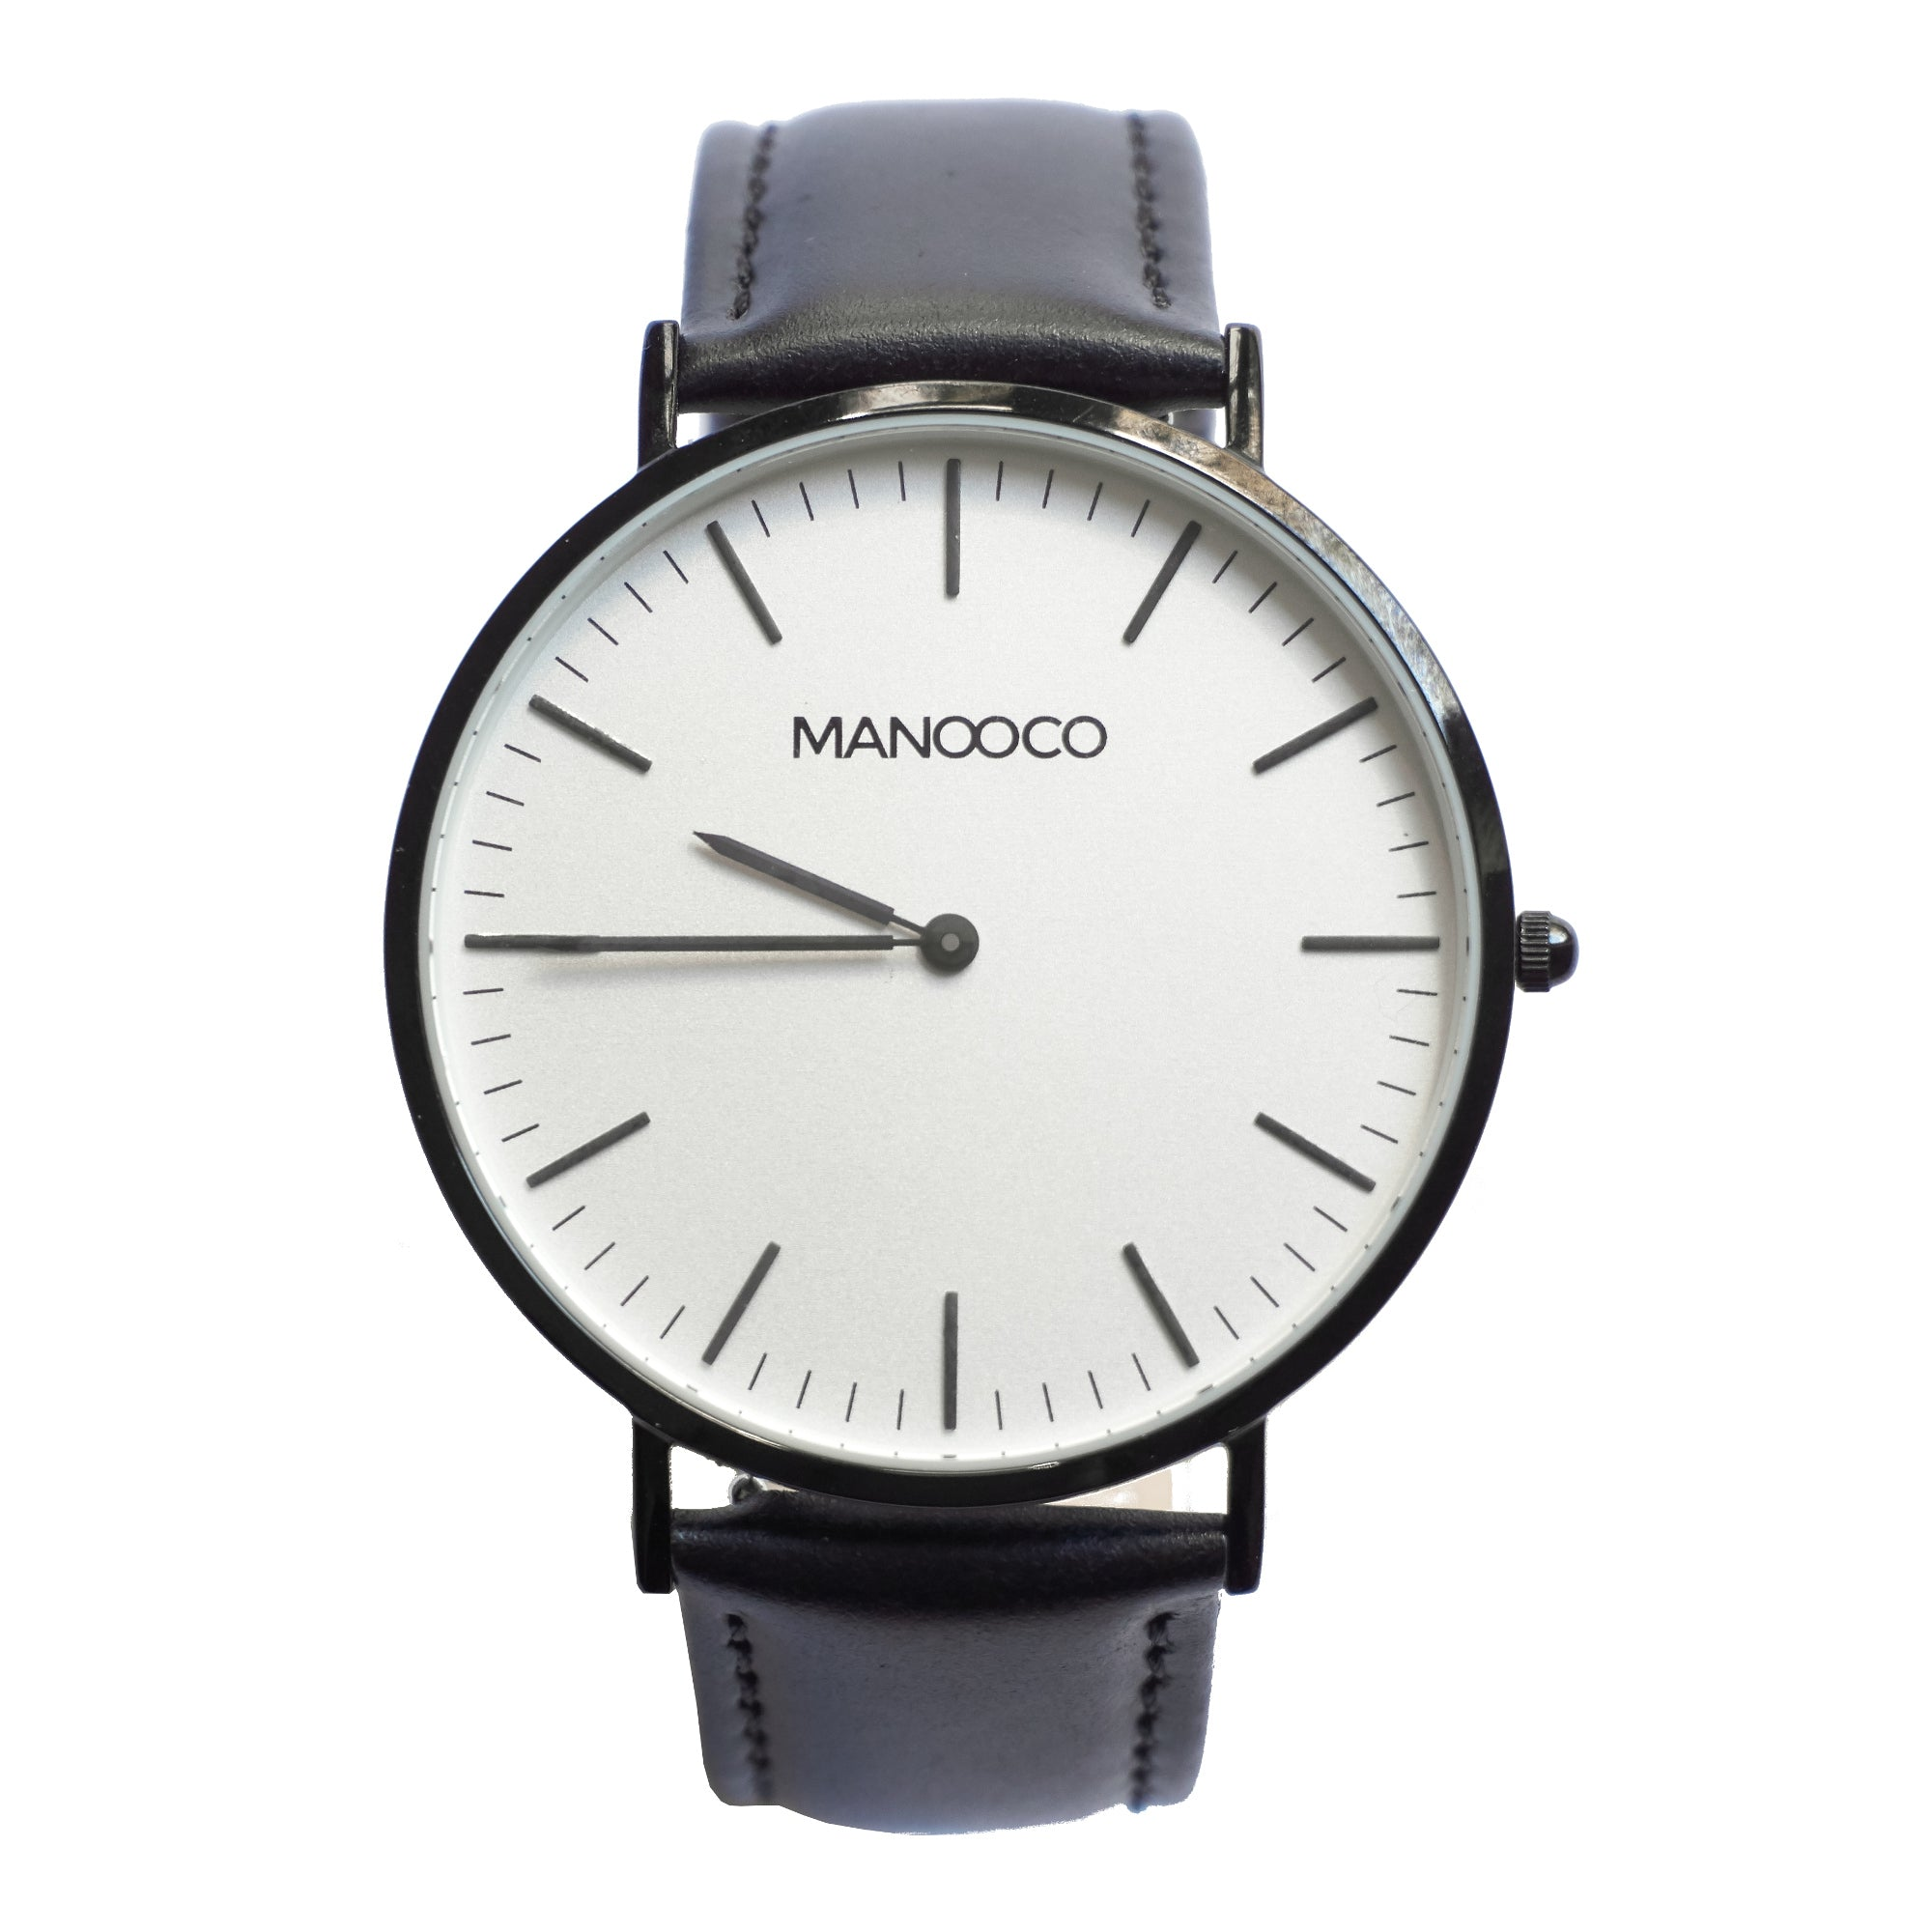 Zephyr Black / Black Glossy Leather - Watch - MANOOCO - Watch - manooco